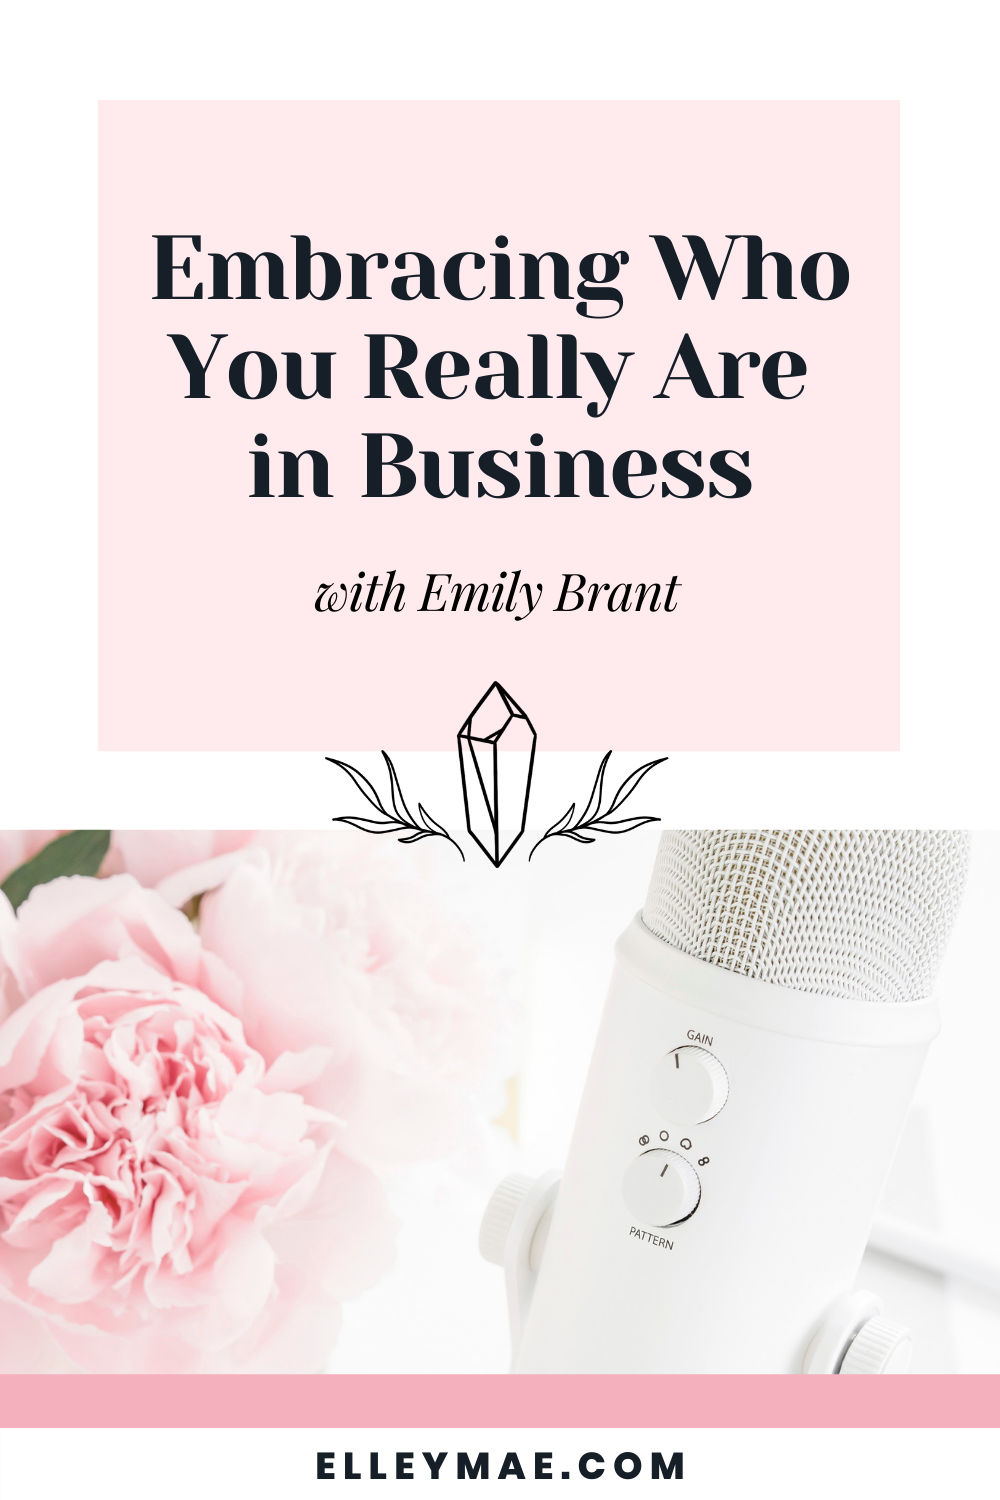 051. Sharing Your Story & Owning Your Unique Gifts in Business with Emily Brant